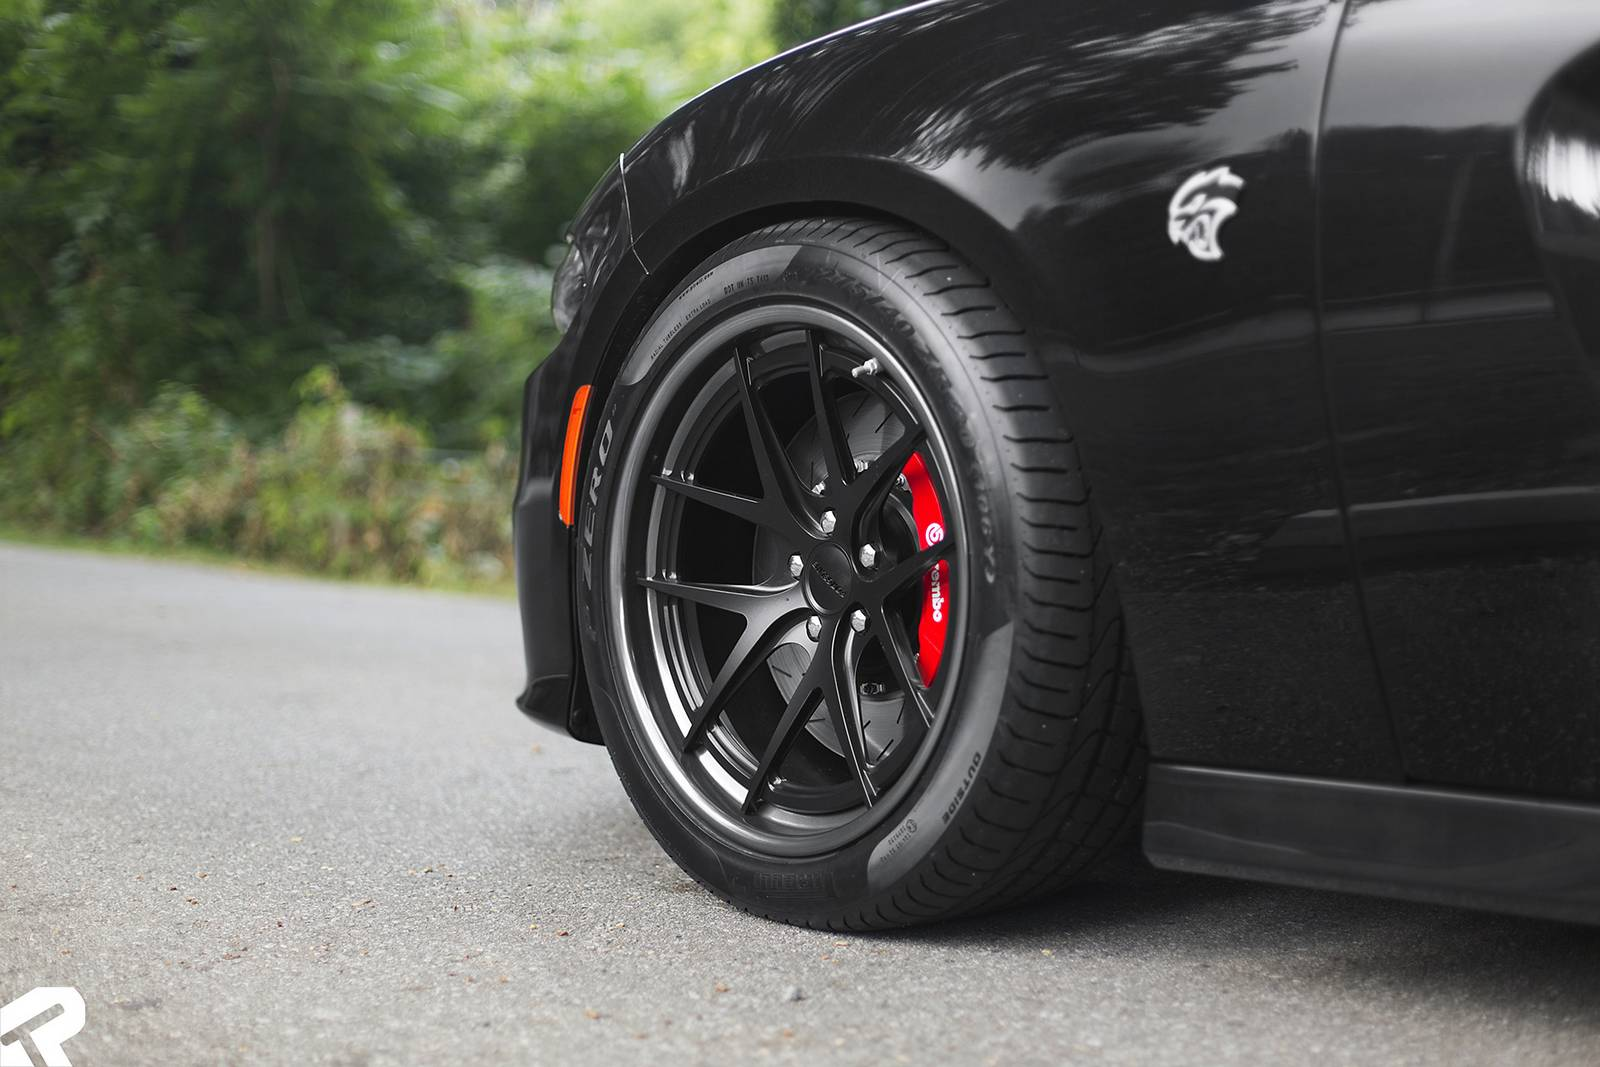 2015 Dodge Charger SRT Hellcat by Pfaff Tuning